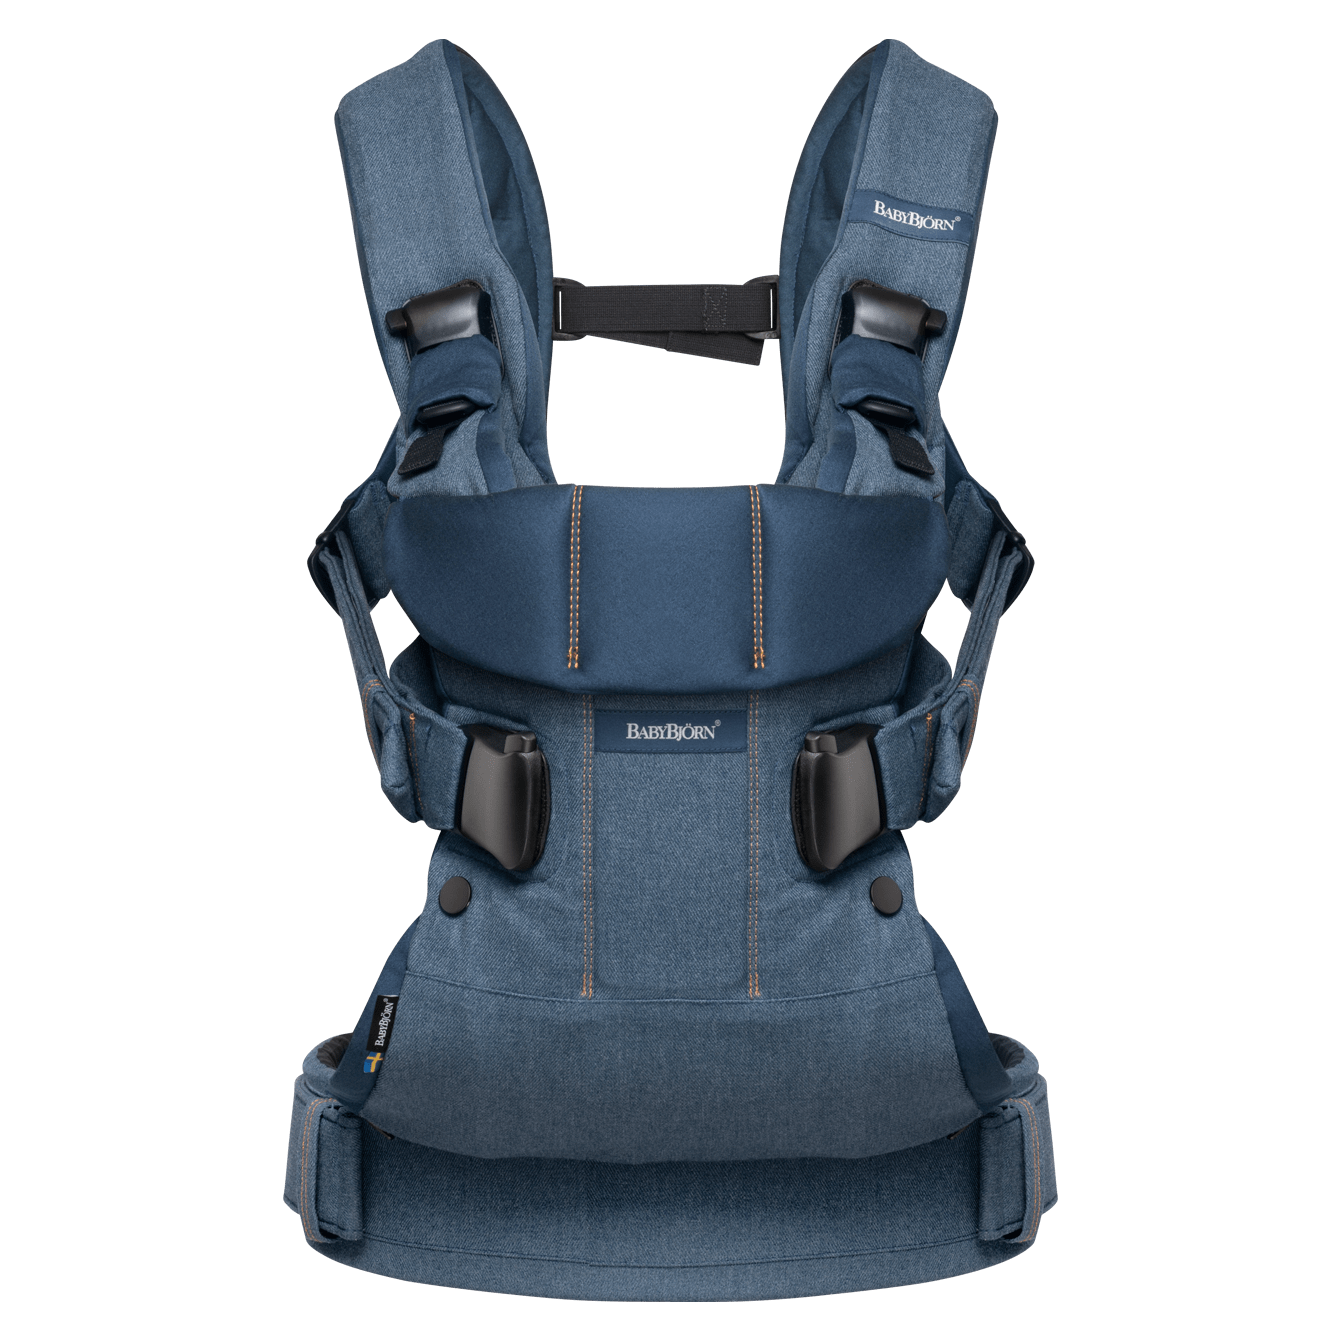 BABYBJÖRN Baby Carrier One in classic denim/midnight blue cotton mix, an ergonomic baby carrier perfect for newborn up to 3 years.